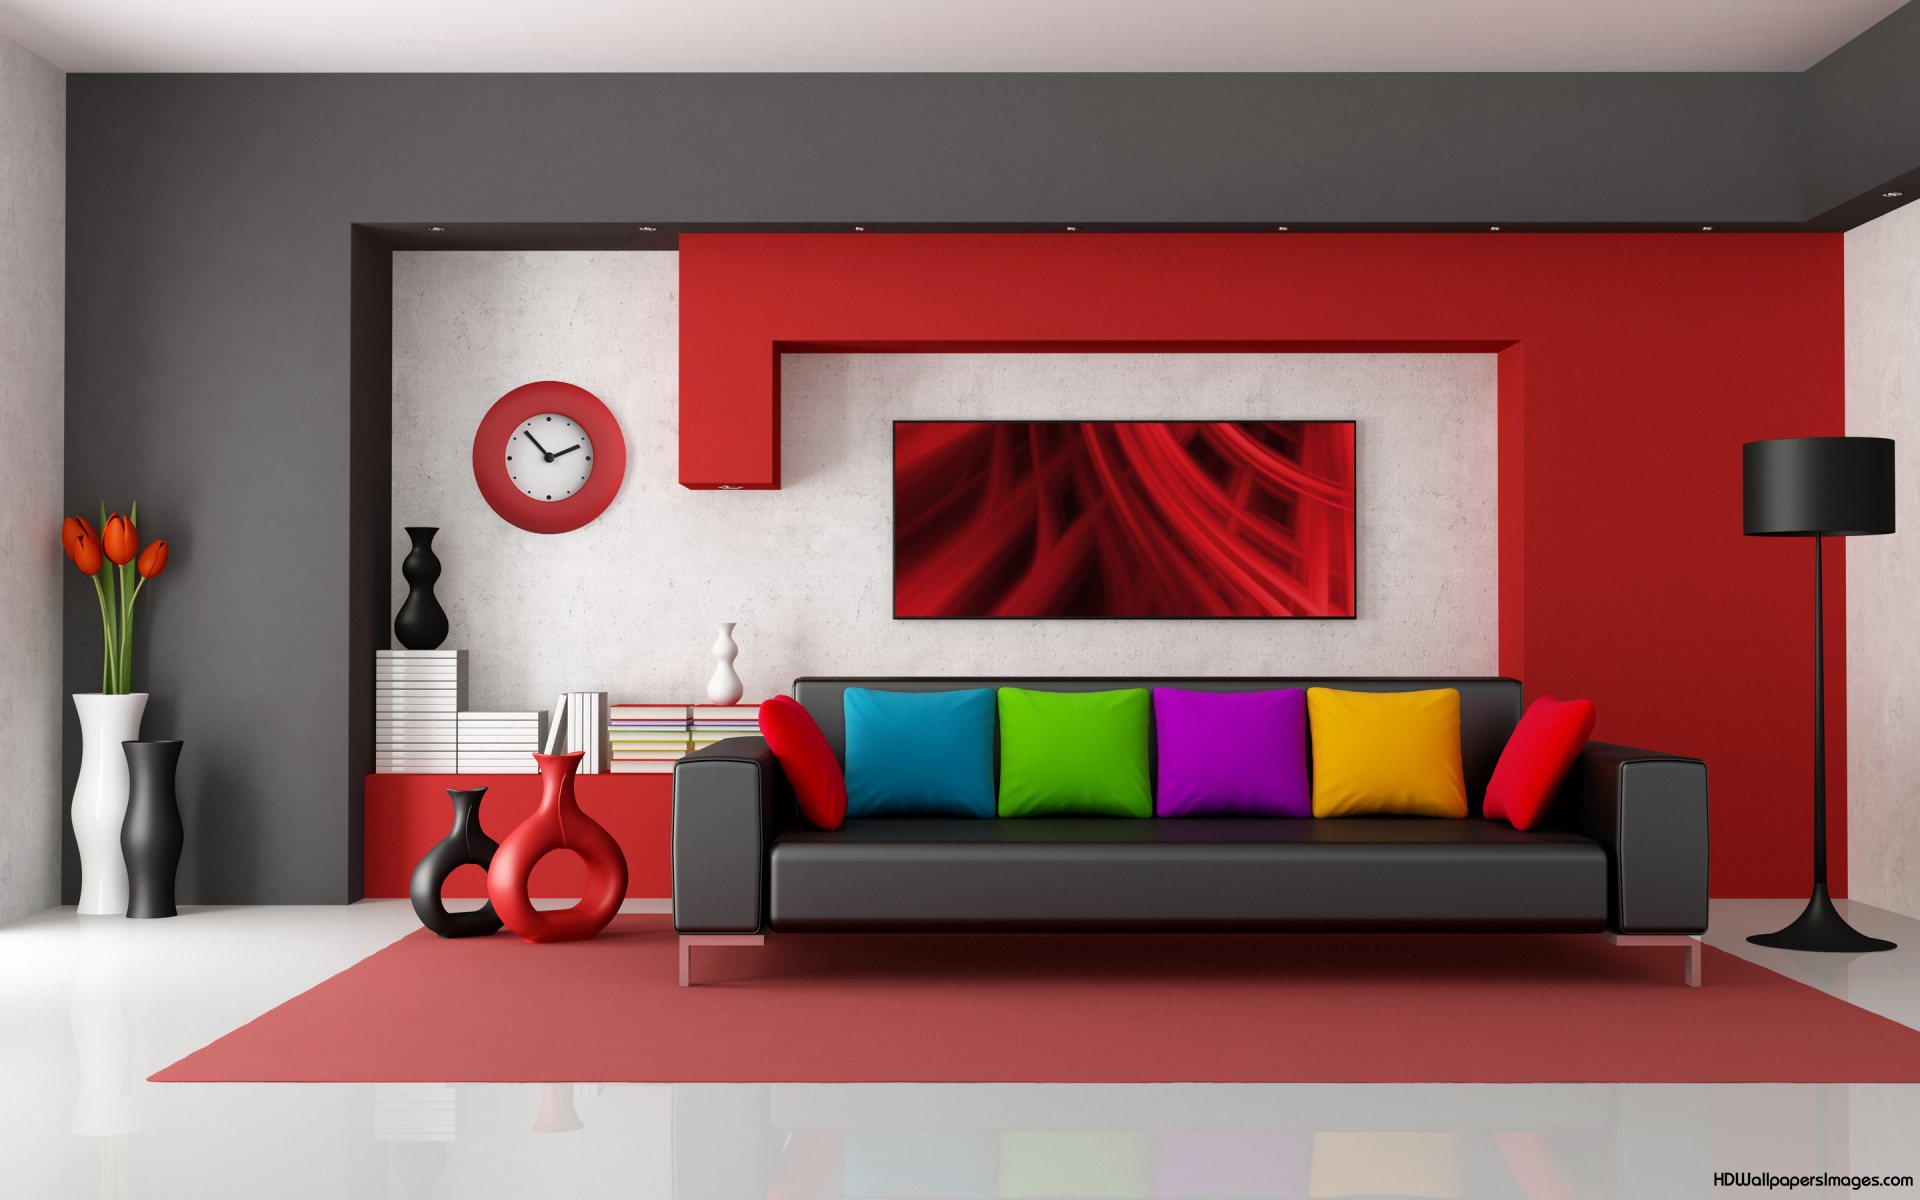 Tips For Ofiice Interior Design From Experts